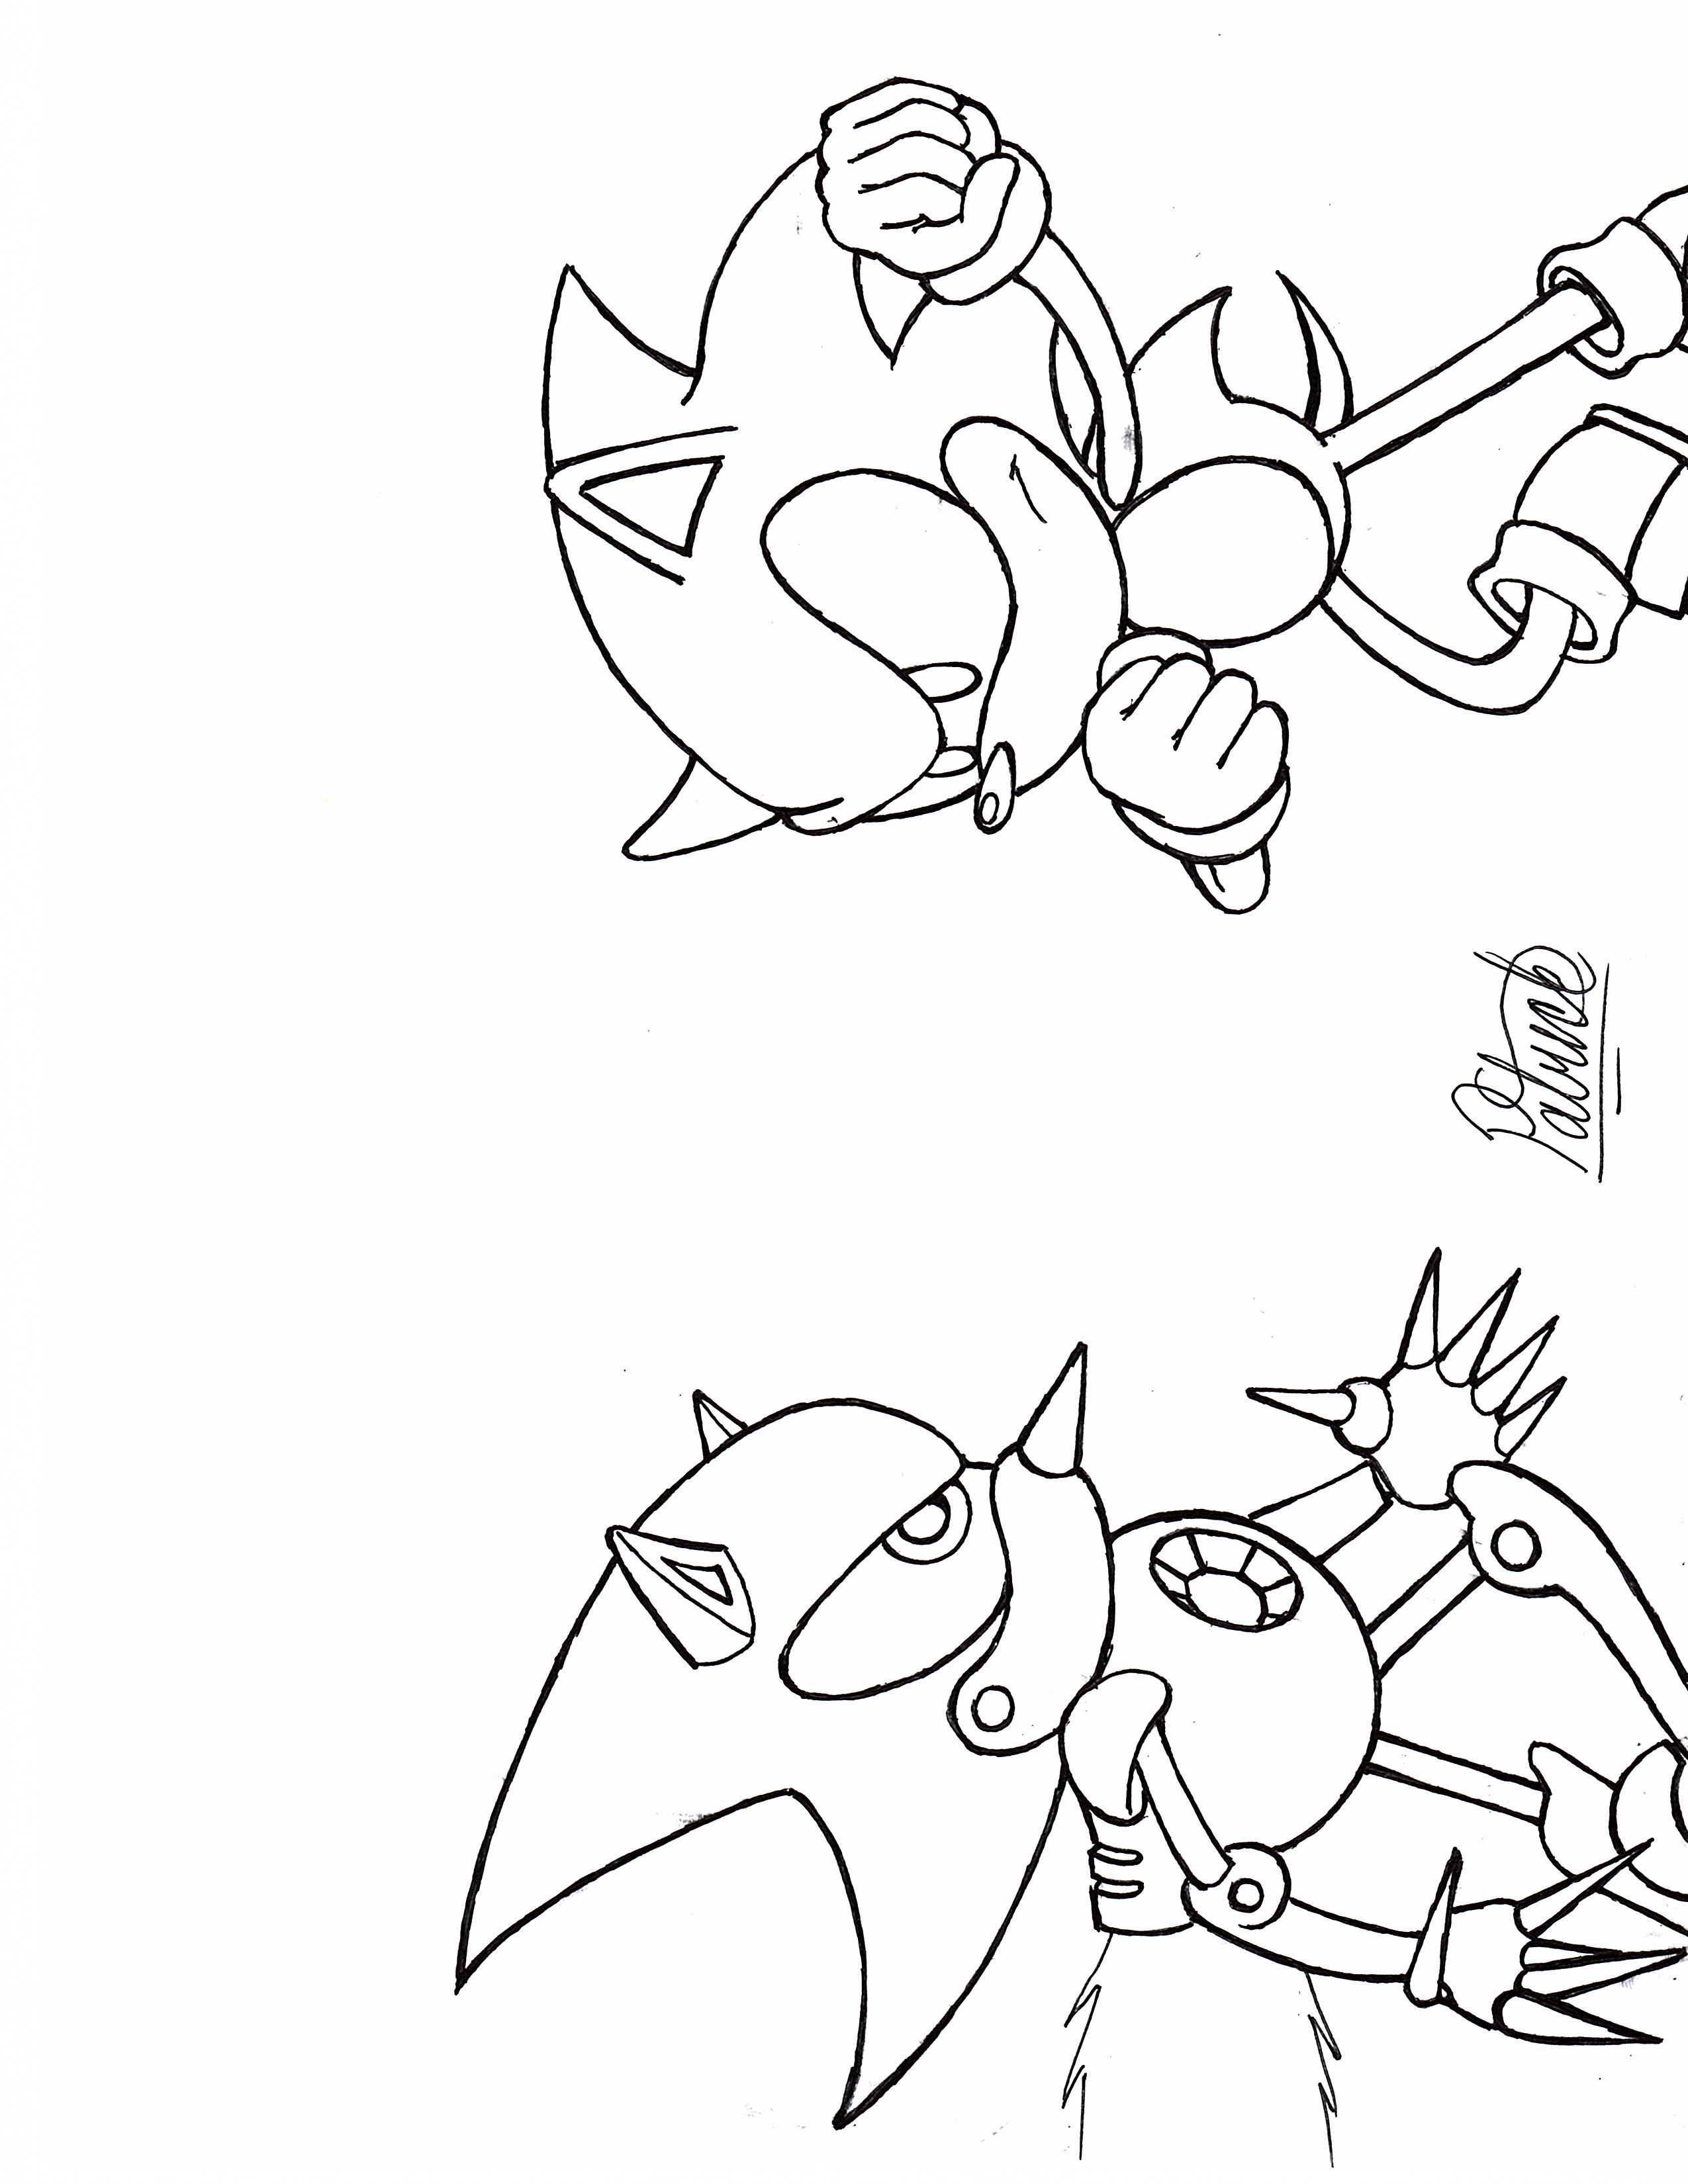 Sonic Cd Coloring Pages Sketch Coloring Page